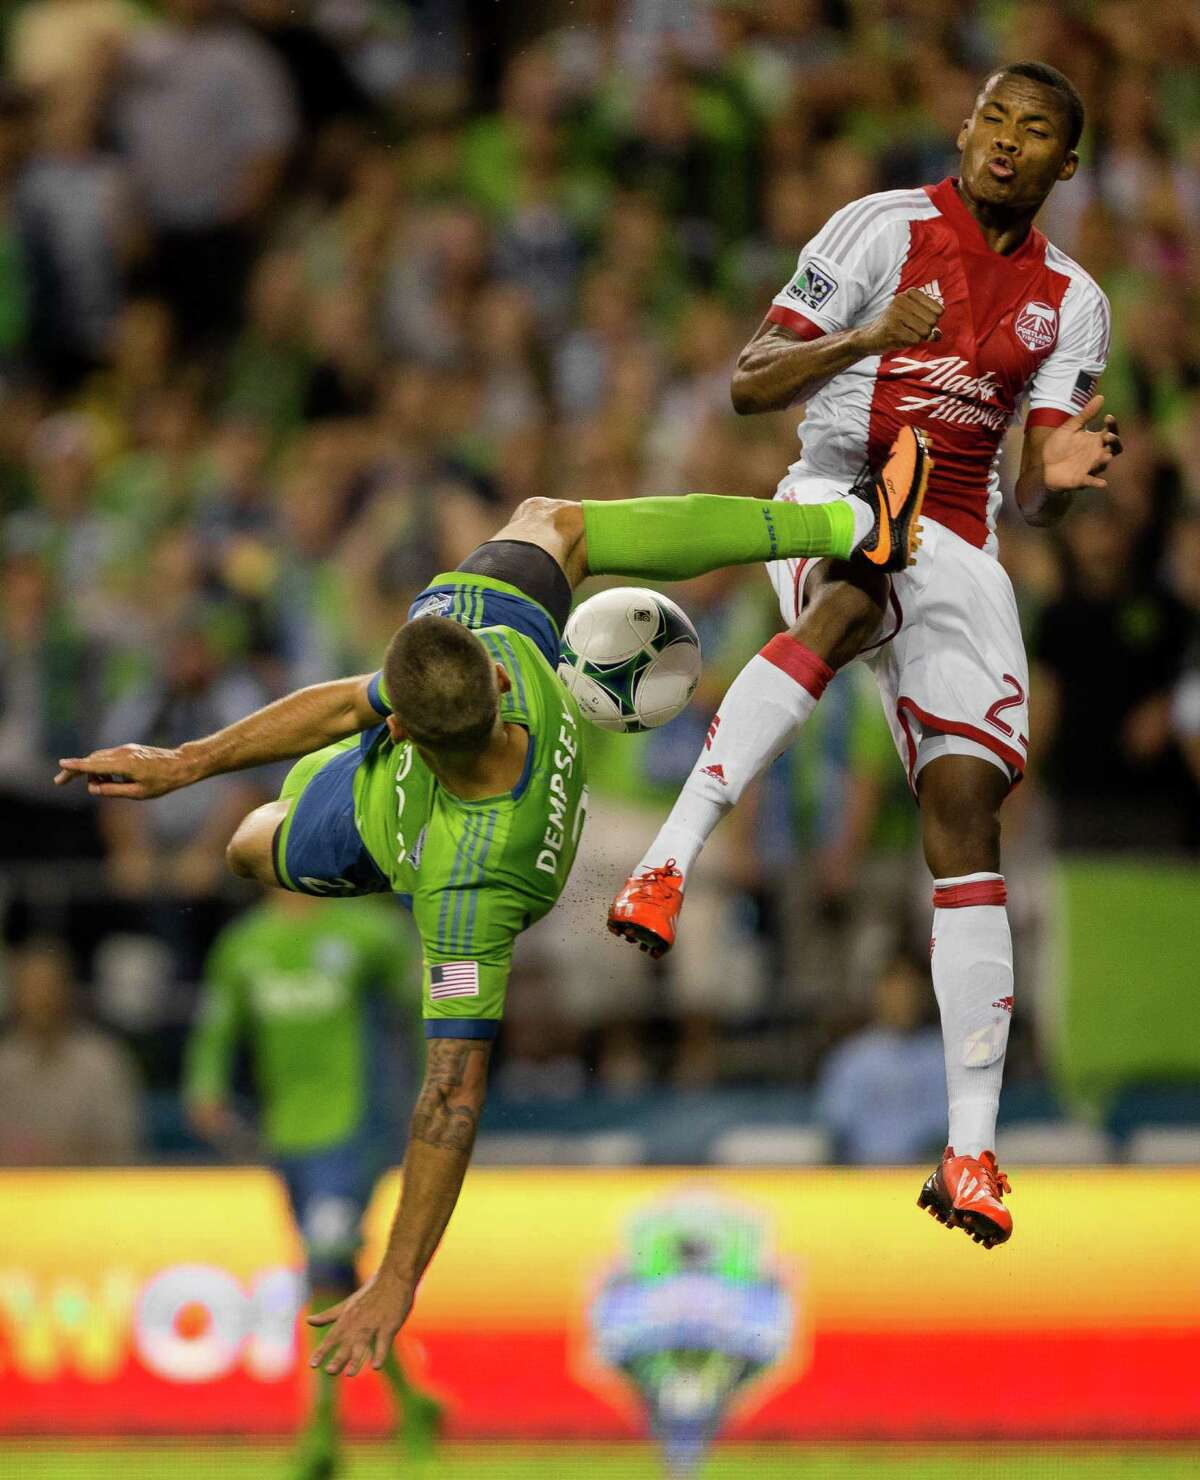 Clint Dempsey, left, goes up for a shot on the Portland Timbers goal with a bicycle kick that nearly struck Alvas Powell, right, during the second half of the Cascadia Cup match Sunday, August 25, 2013, at CenturyLink Field in Seattle. The Sounders beat the Timbers 1-0. The sold-out match marked Clint Dempsey's first home game as a member of the Seattle Sounders FC.